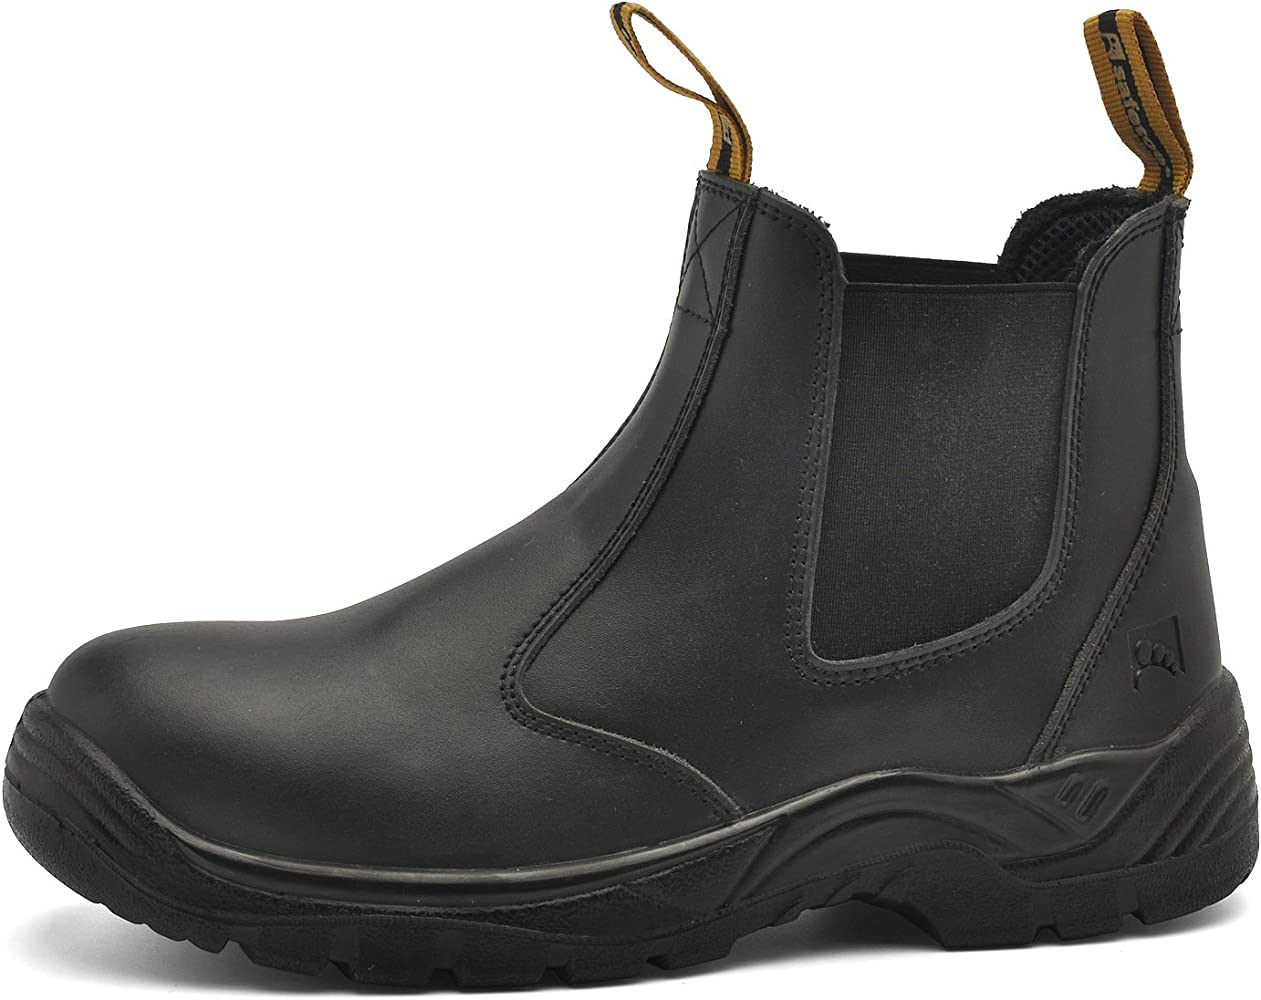 SAFETOE Water Resistant Safety Work